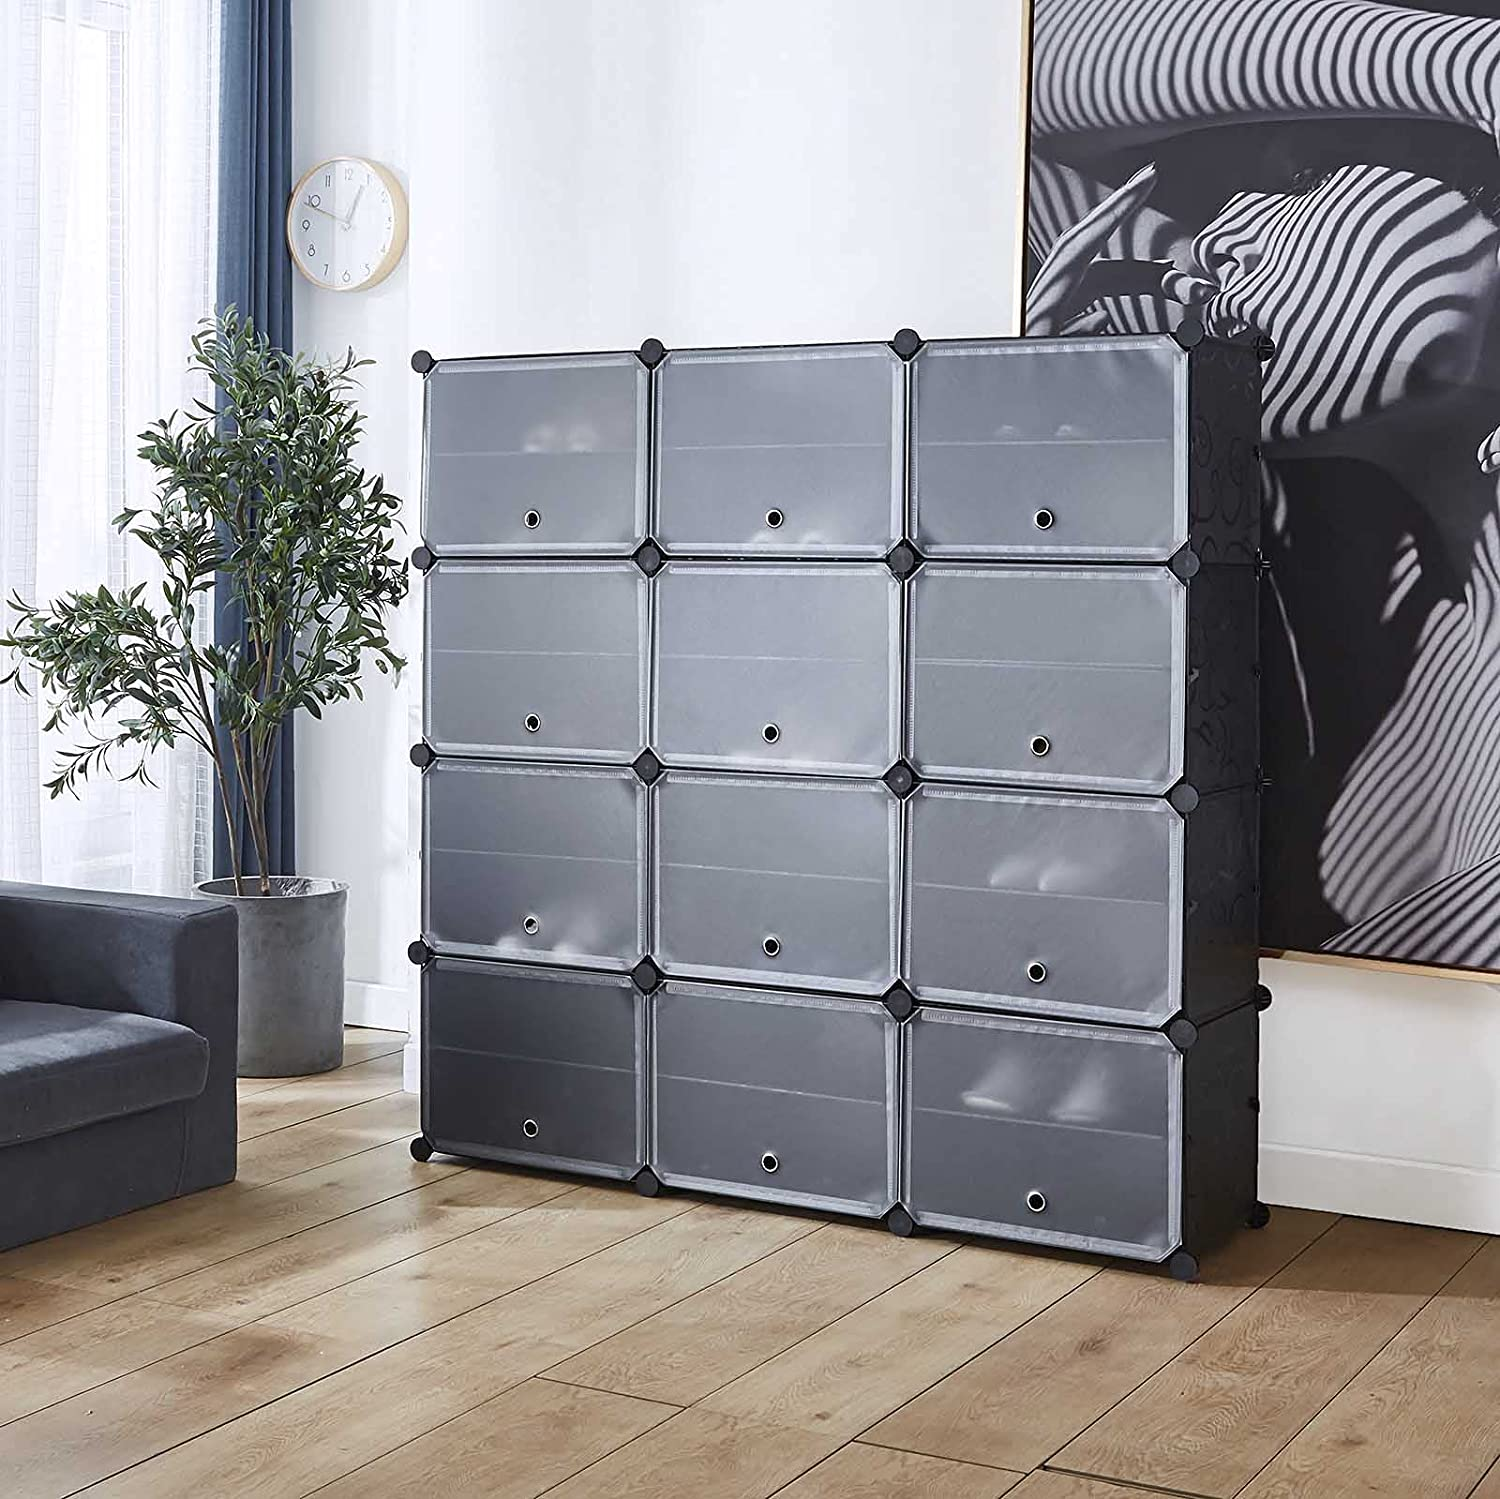 National uniform free shipping Portable Shoe Storage Organizer 4 Tier Fixed price for sale Plastic Cube Rack 24